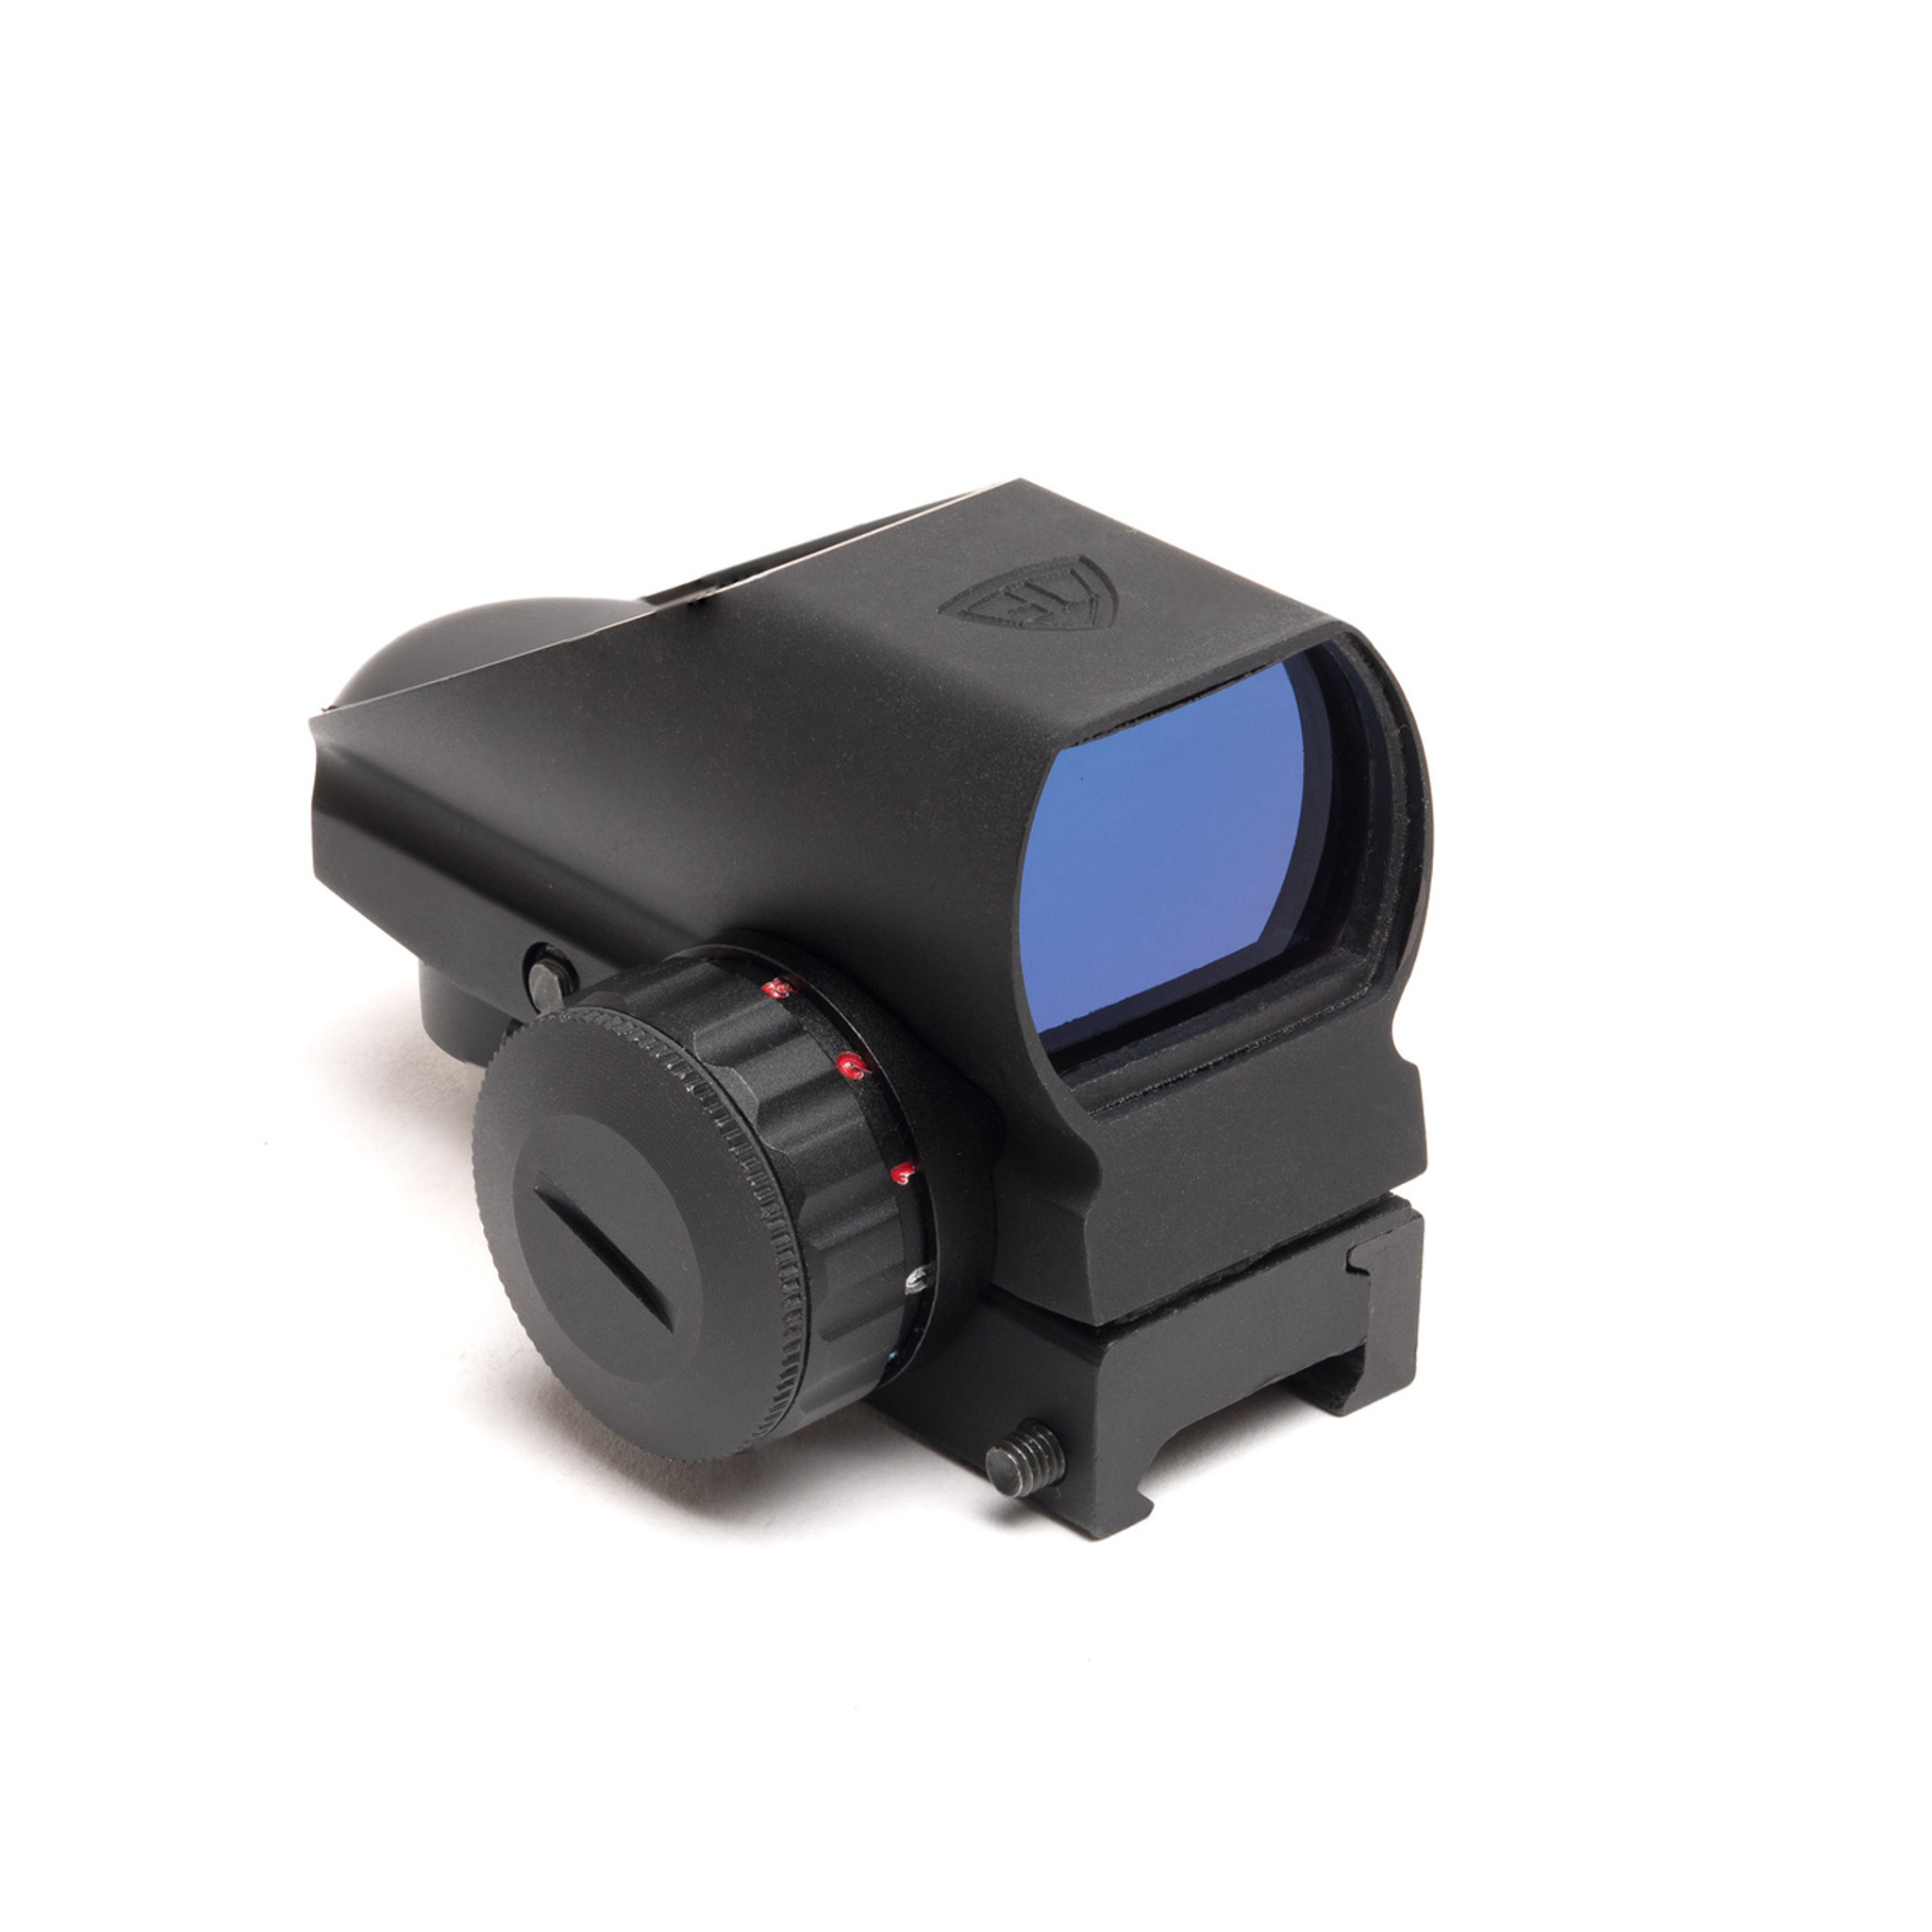 DP-12 BG Blue/Green Reflex sight